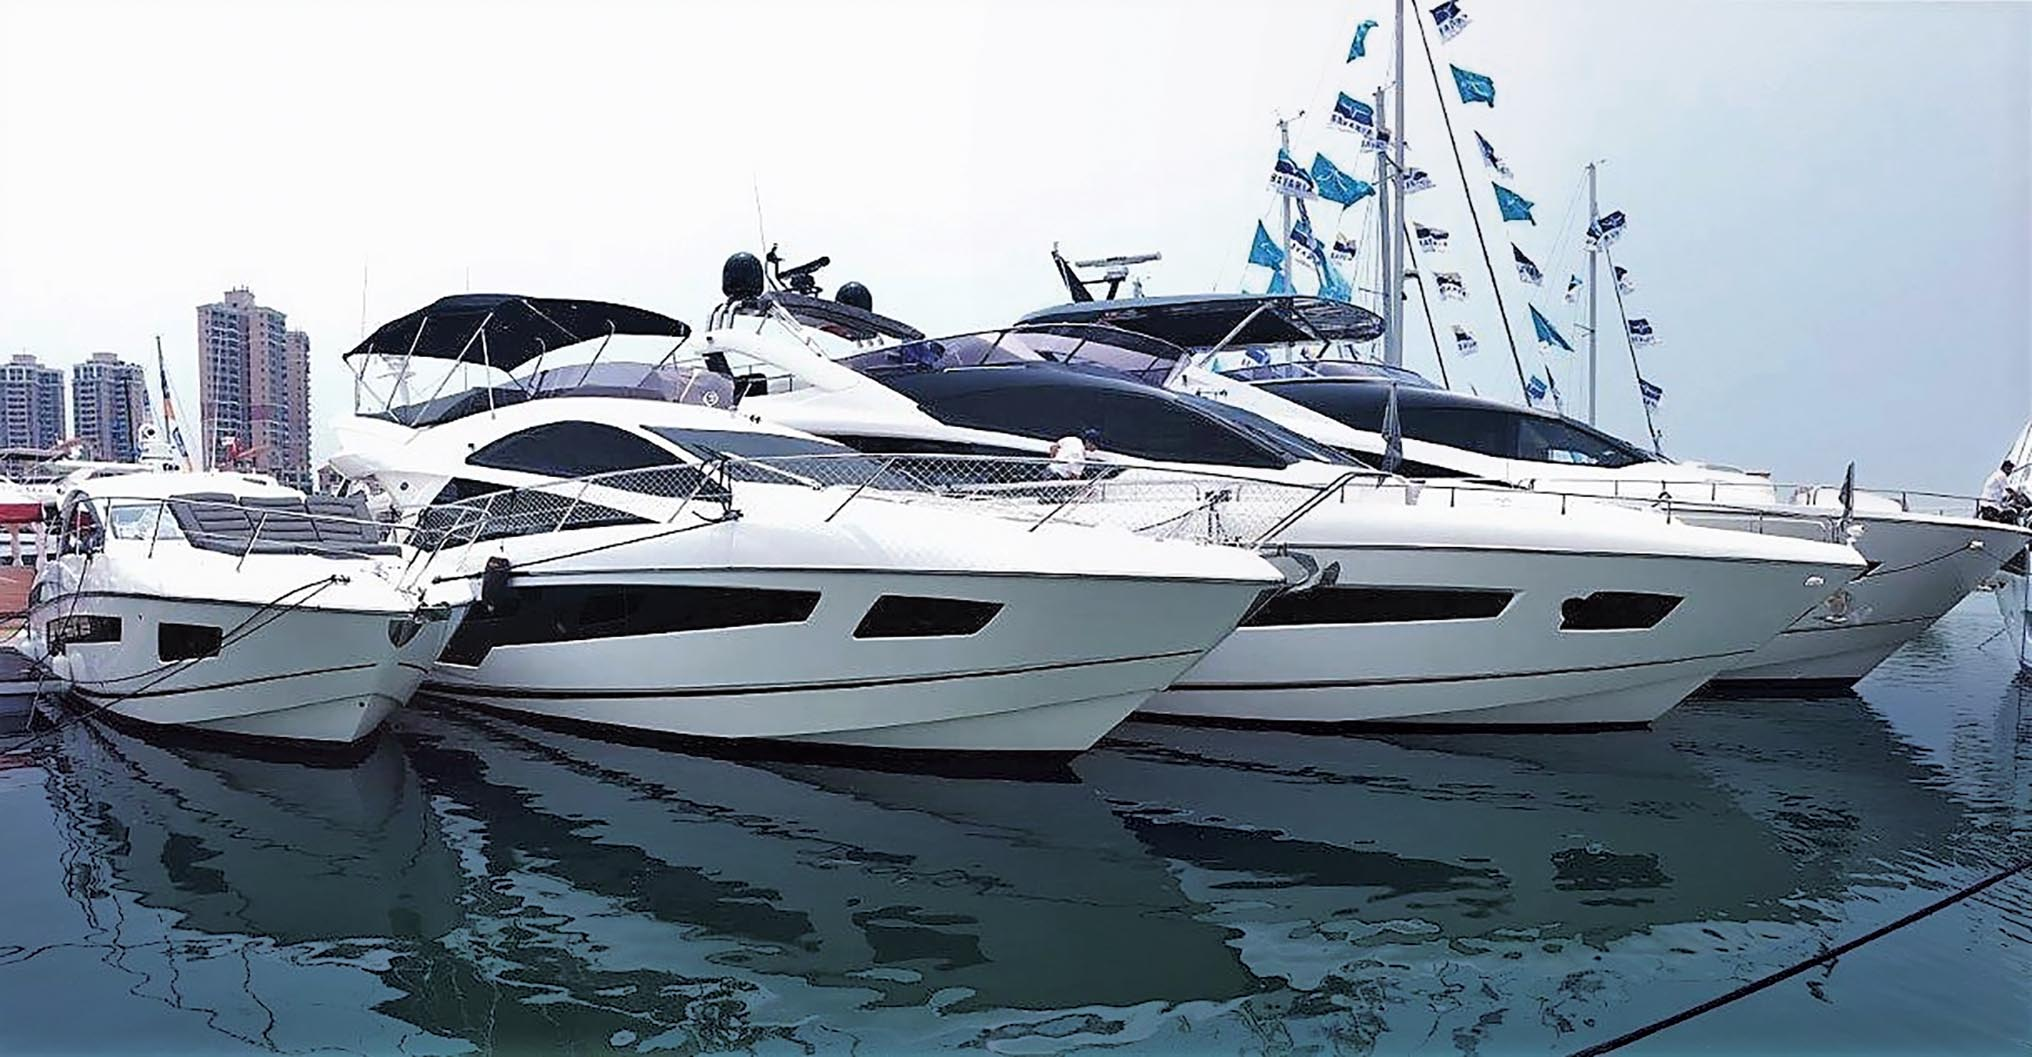 A variety of Sunseekers at the 2016 Hong Kong International Boat Show